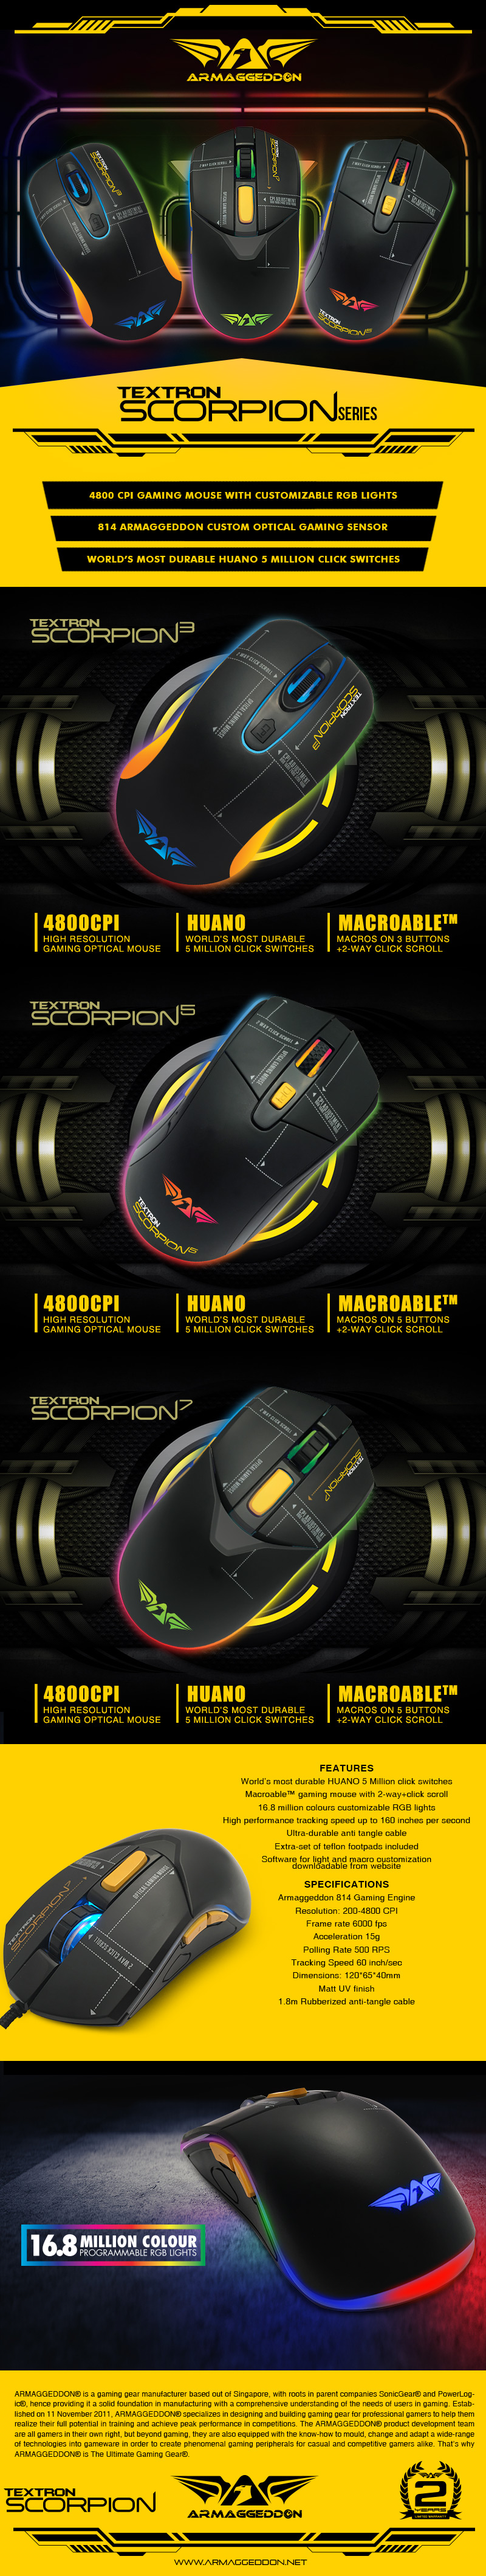 eDM-Scorpion-Series-1